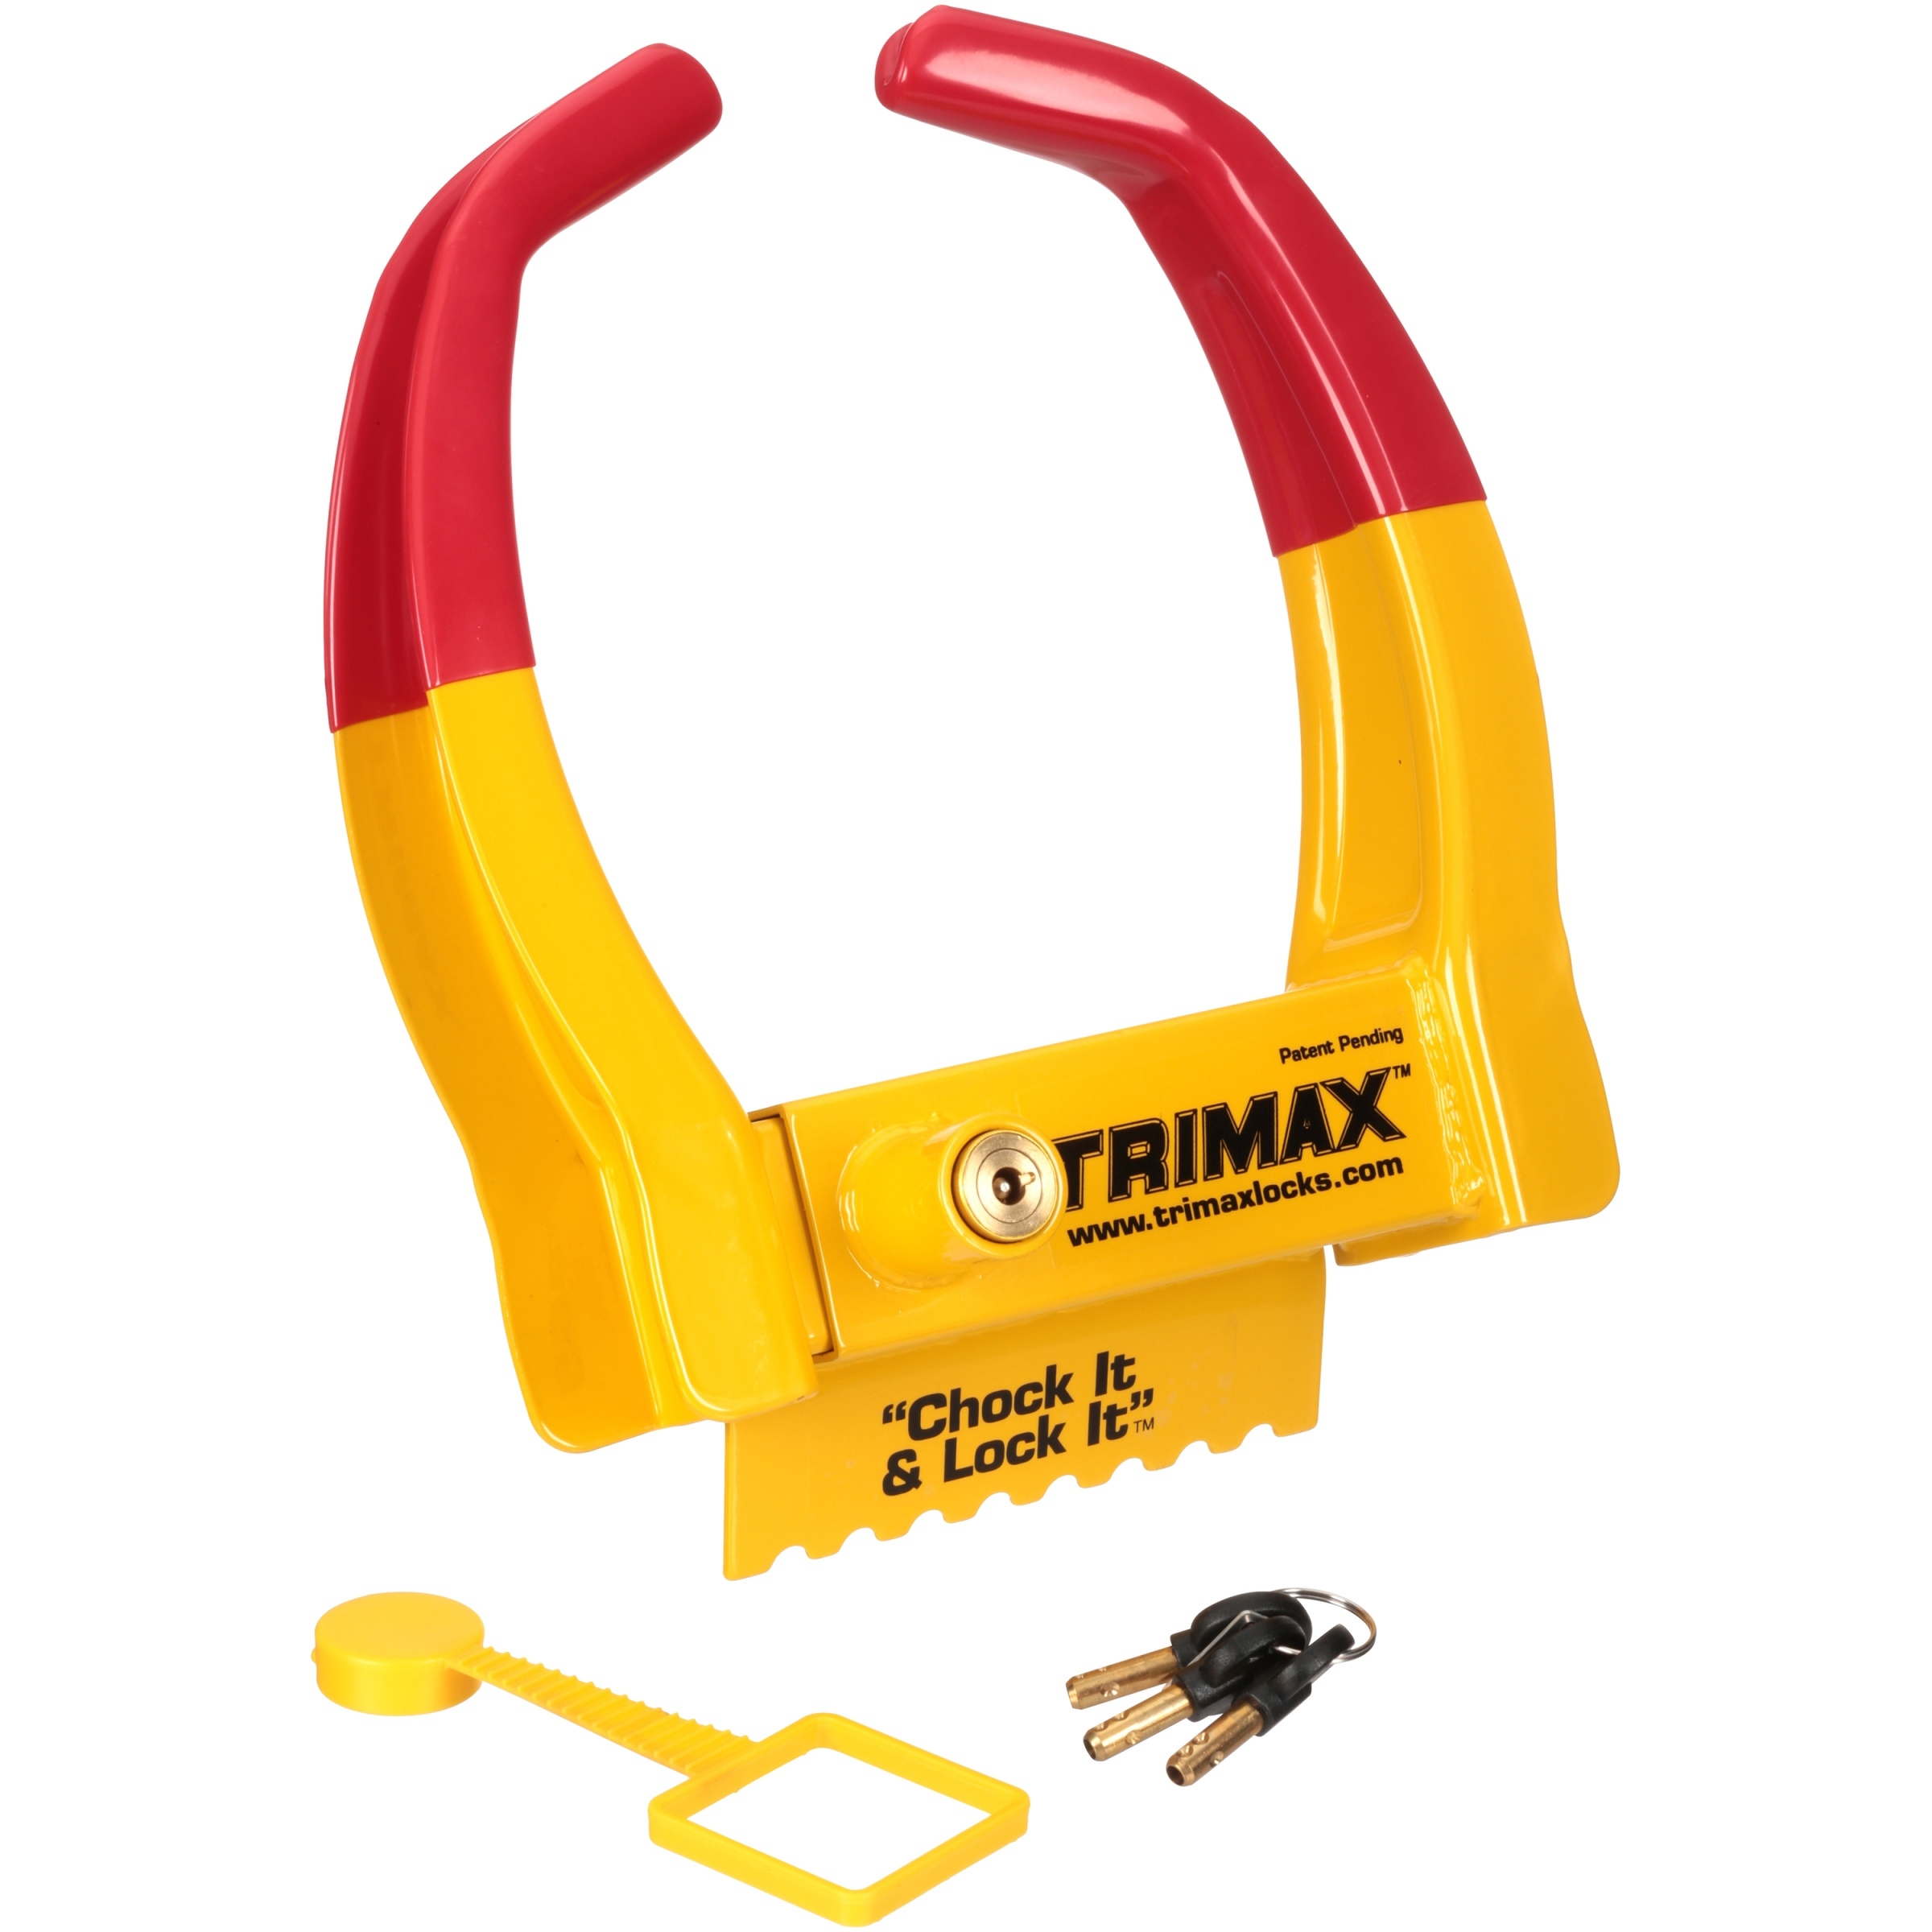 Trimax™ Deluxe Universal Wheel Chock Lock